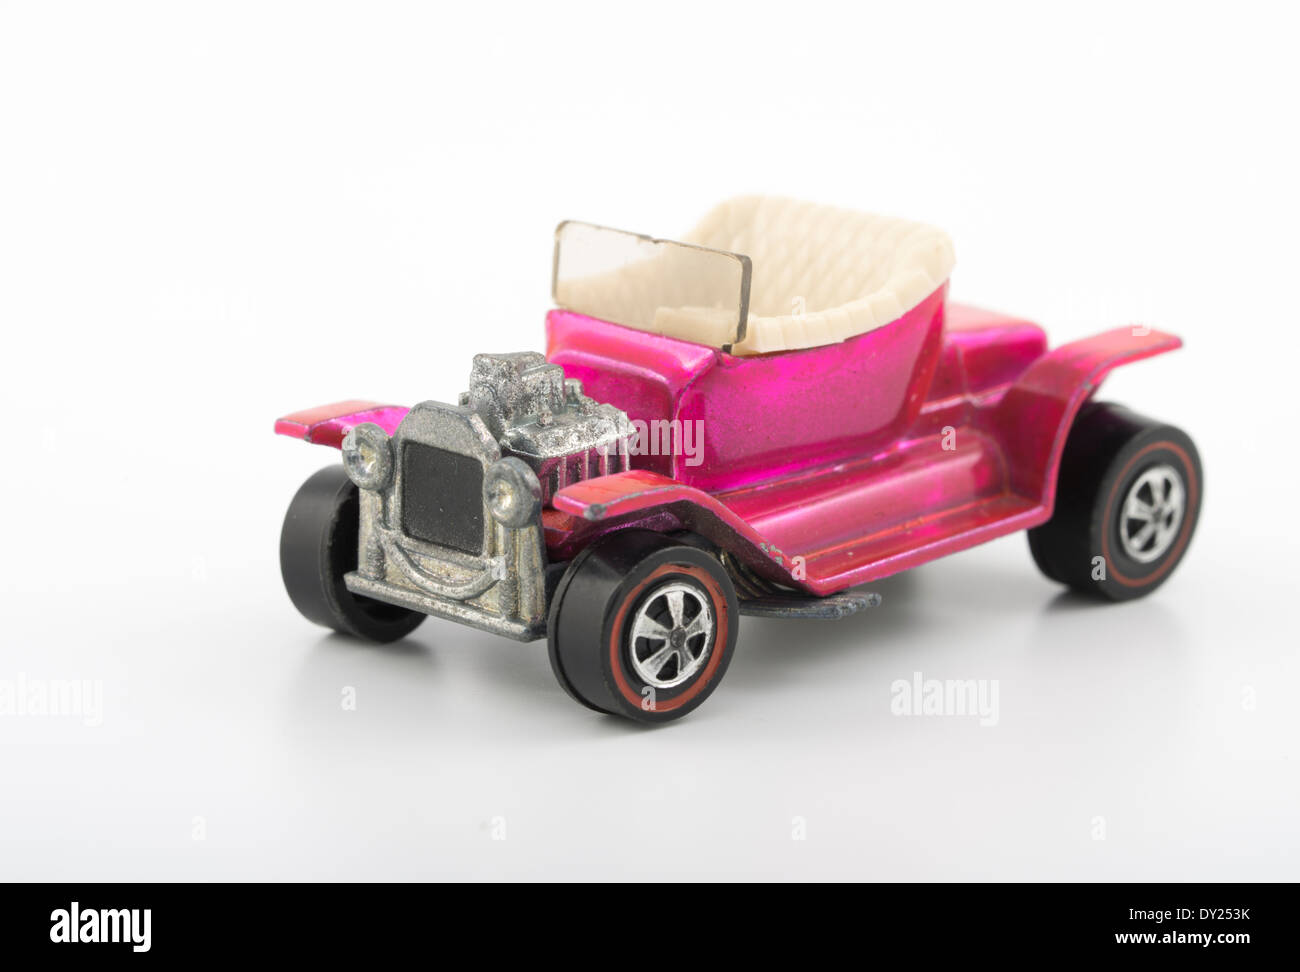 Pink Hot Heap, Hot Wheels die-cast toy cars by Mattel 1968 with Spectraflame paintwork - Stock Image